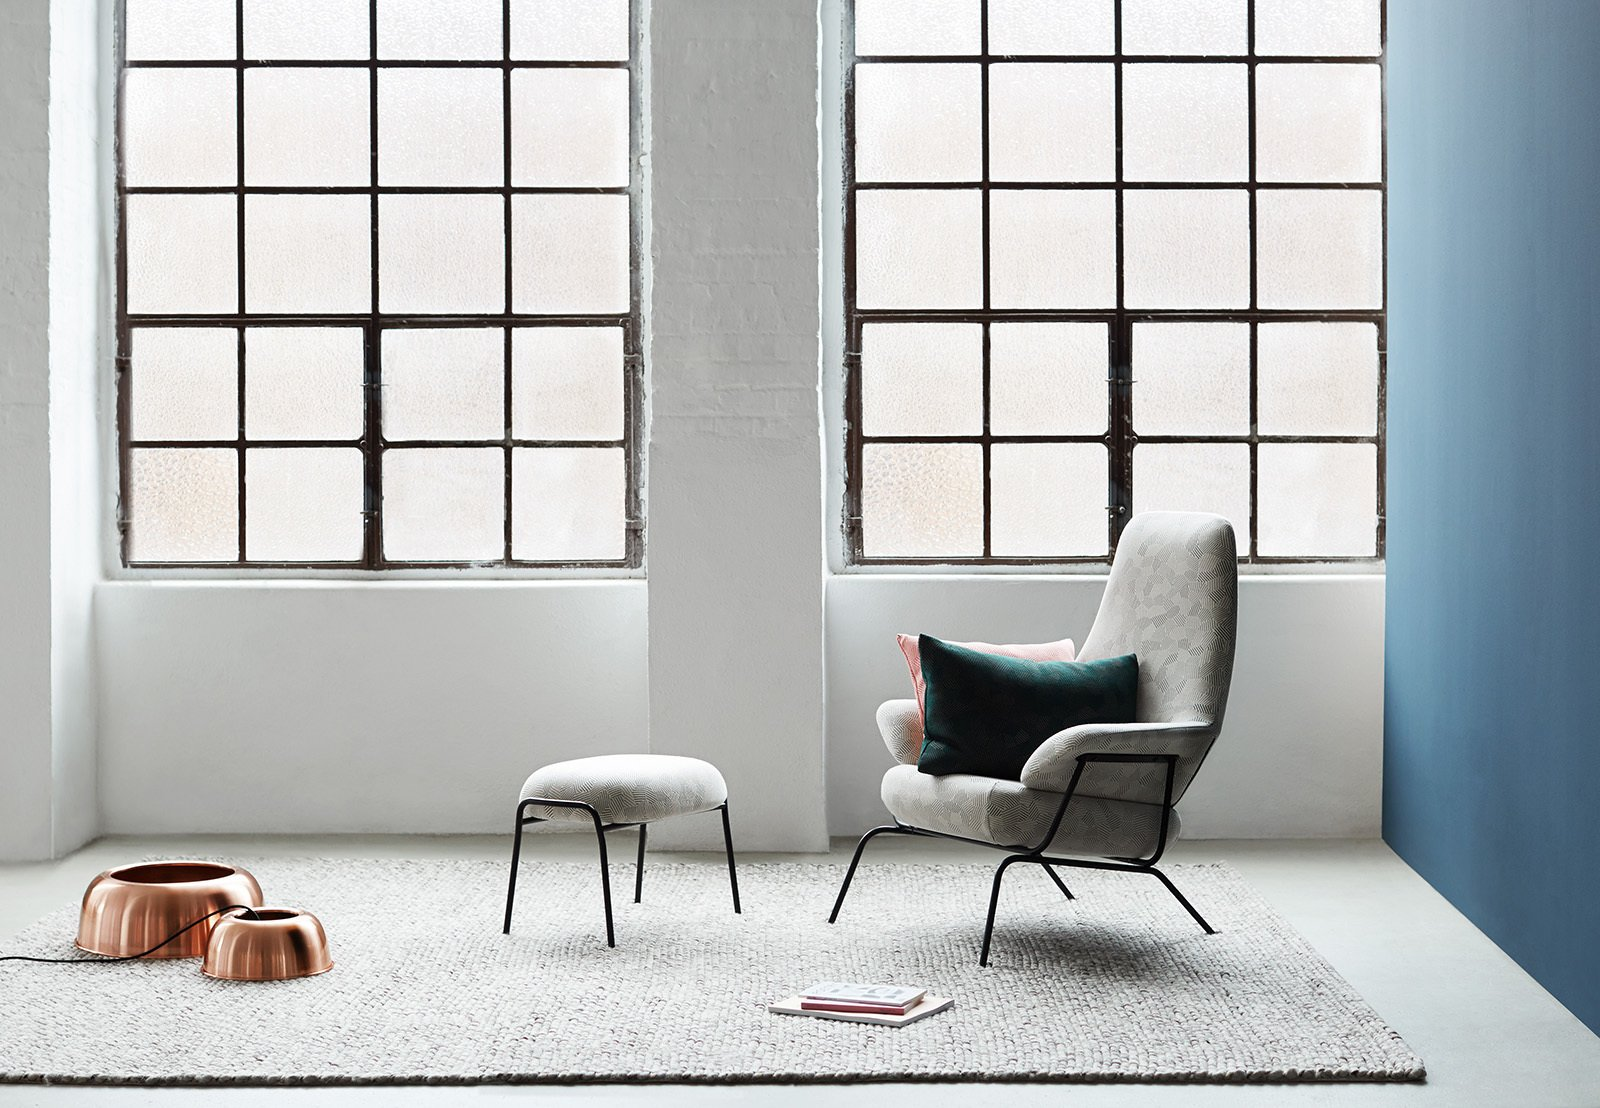 #seatingdesign #seating #Hai #chair #livingroom #window #rug #light #blue #copper #LucaNichetto #minimalist #modern #interior #inside #indoor  100+ Best Modern Seating Designs